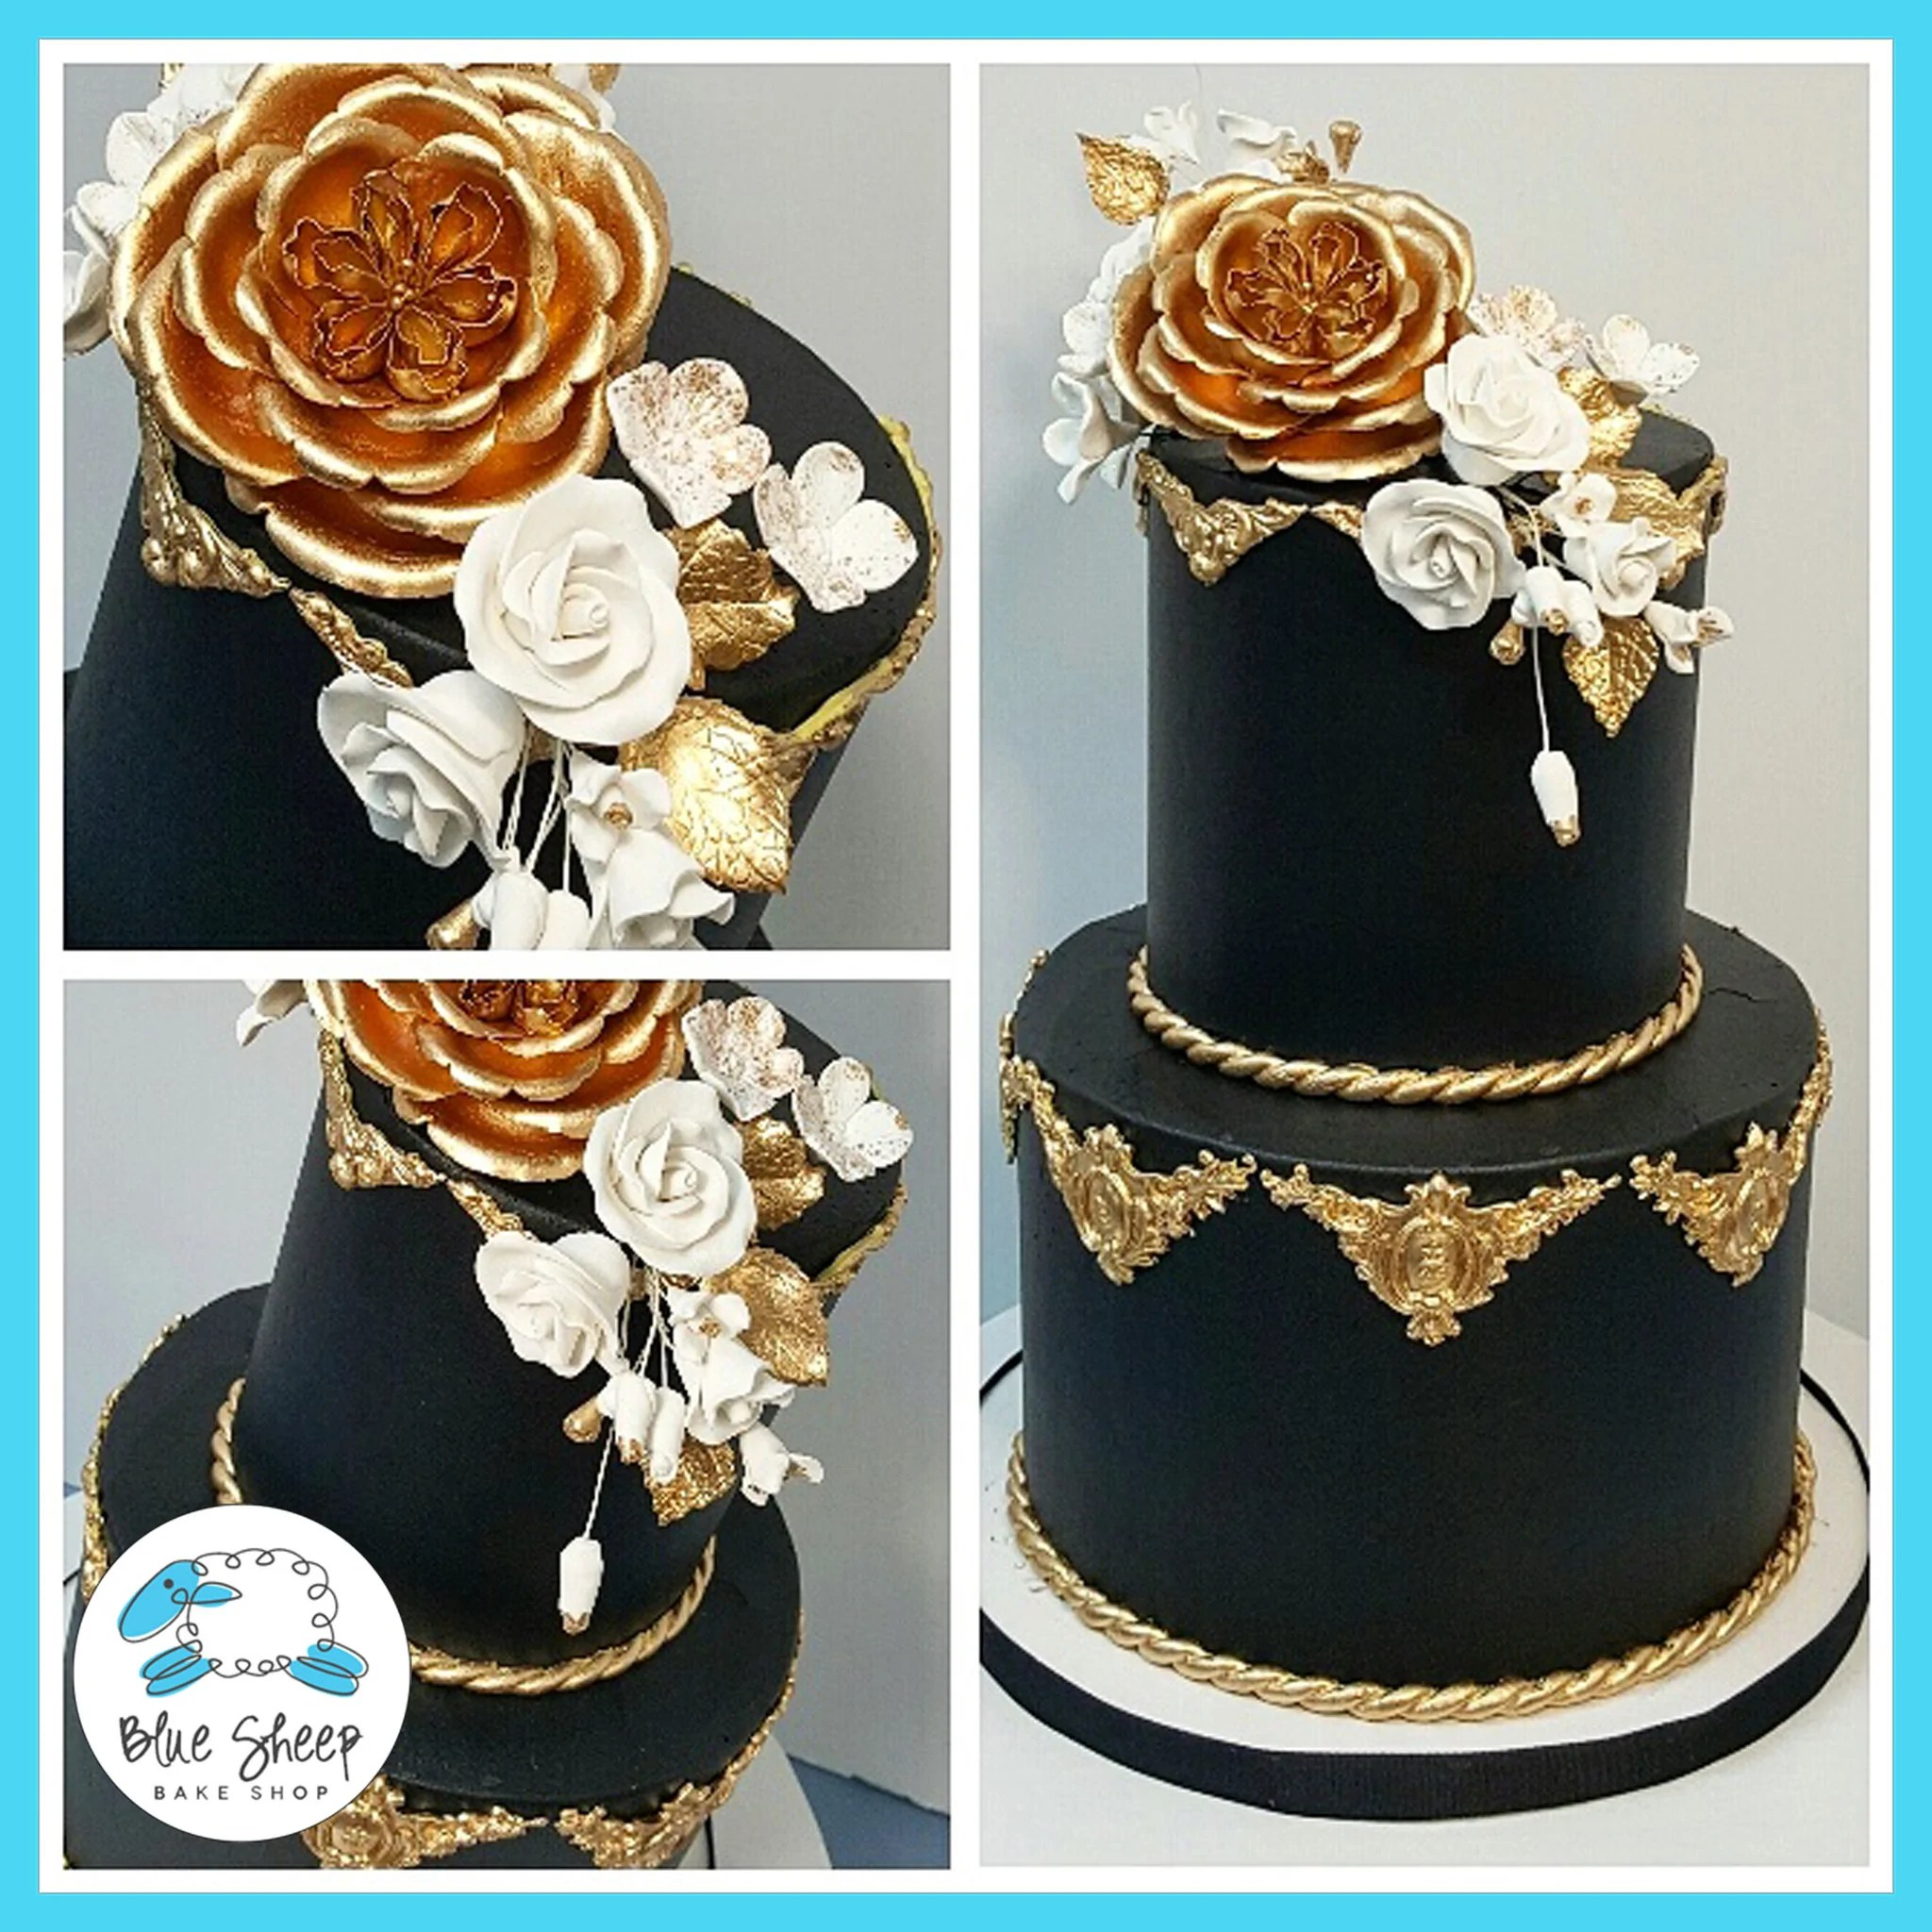 Black and Gold Buttercream Wedding Cake NJ   Blue Sheep Bake Shop best black and gold wedding cakes nj